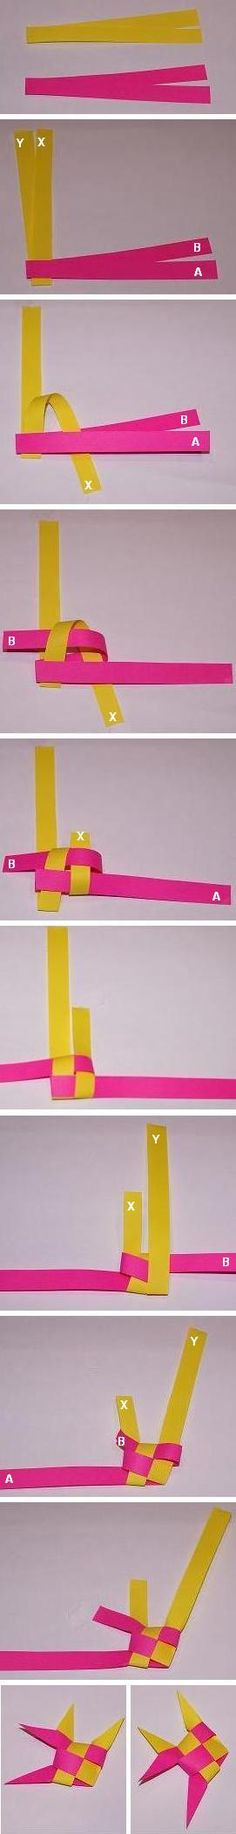 Make an easy fish by weaving strips of paper or ribbon.  Easy to make, fun to do, kid friendly craft.